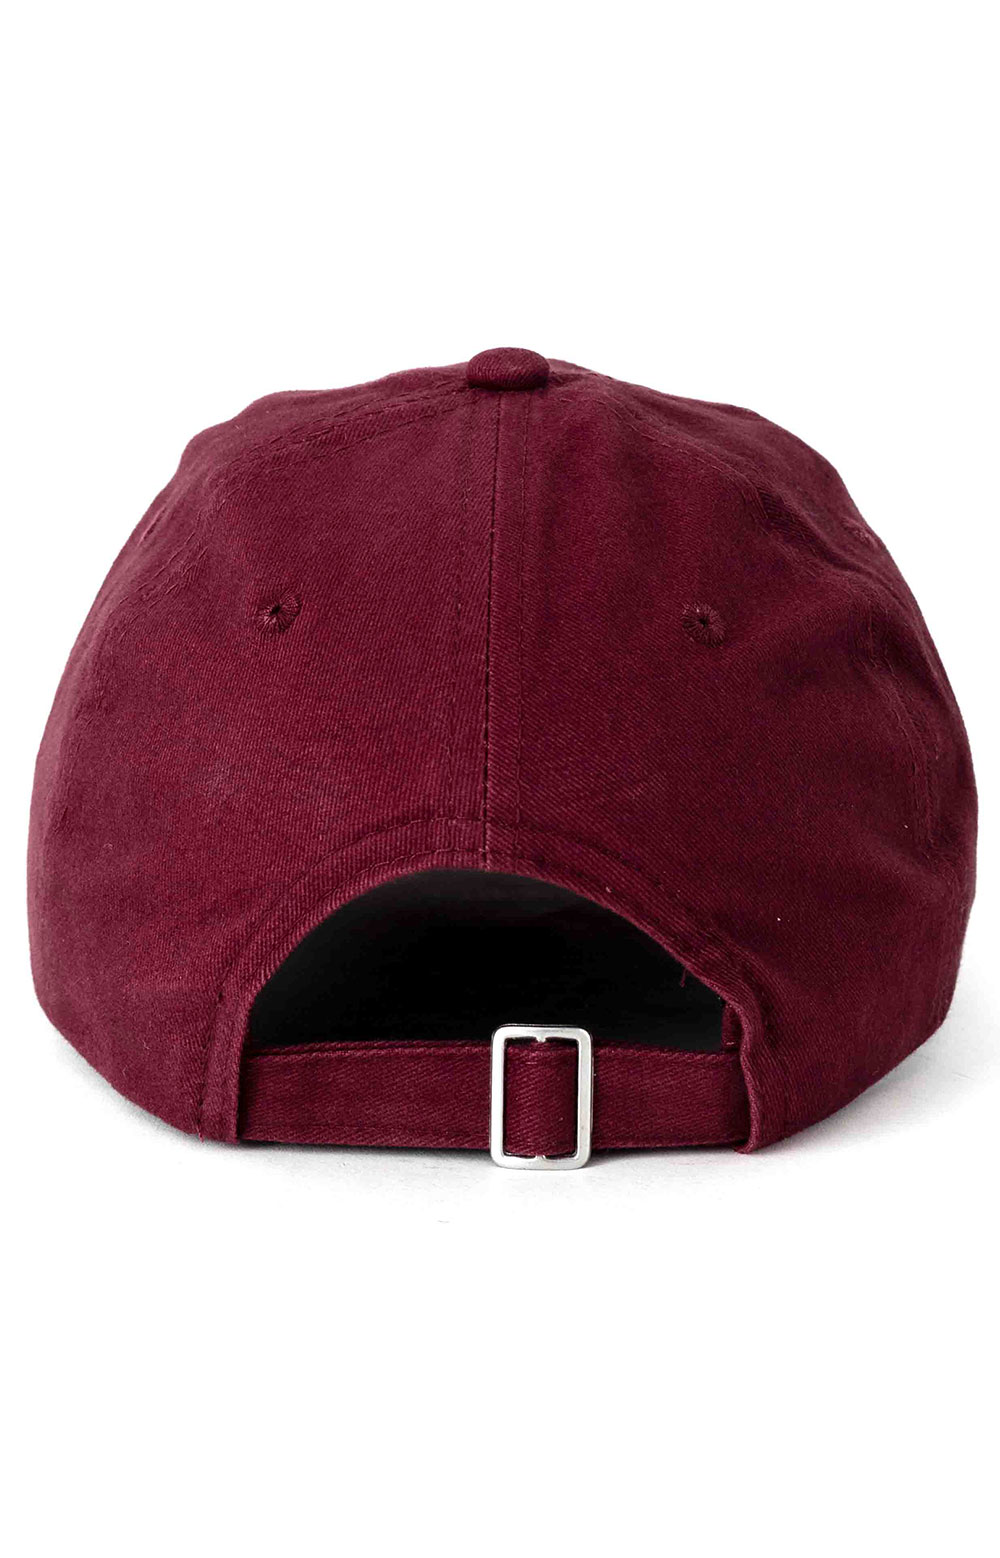 Unstructured Ball Cap - Burgundy 3